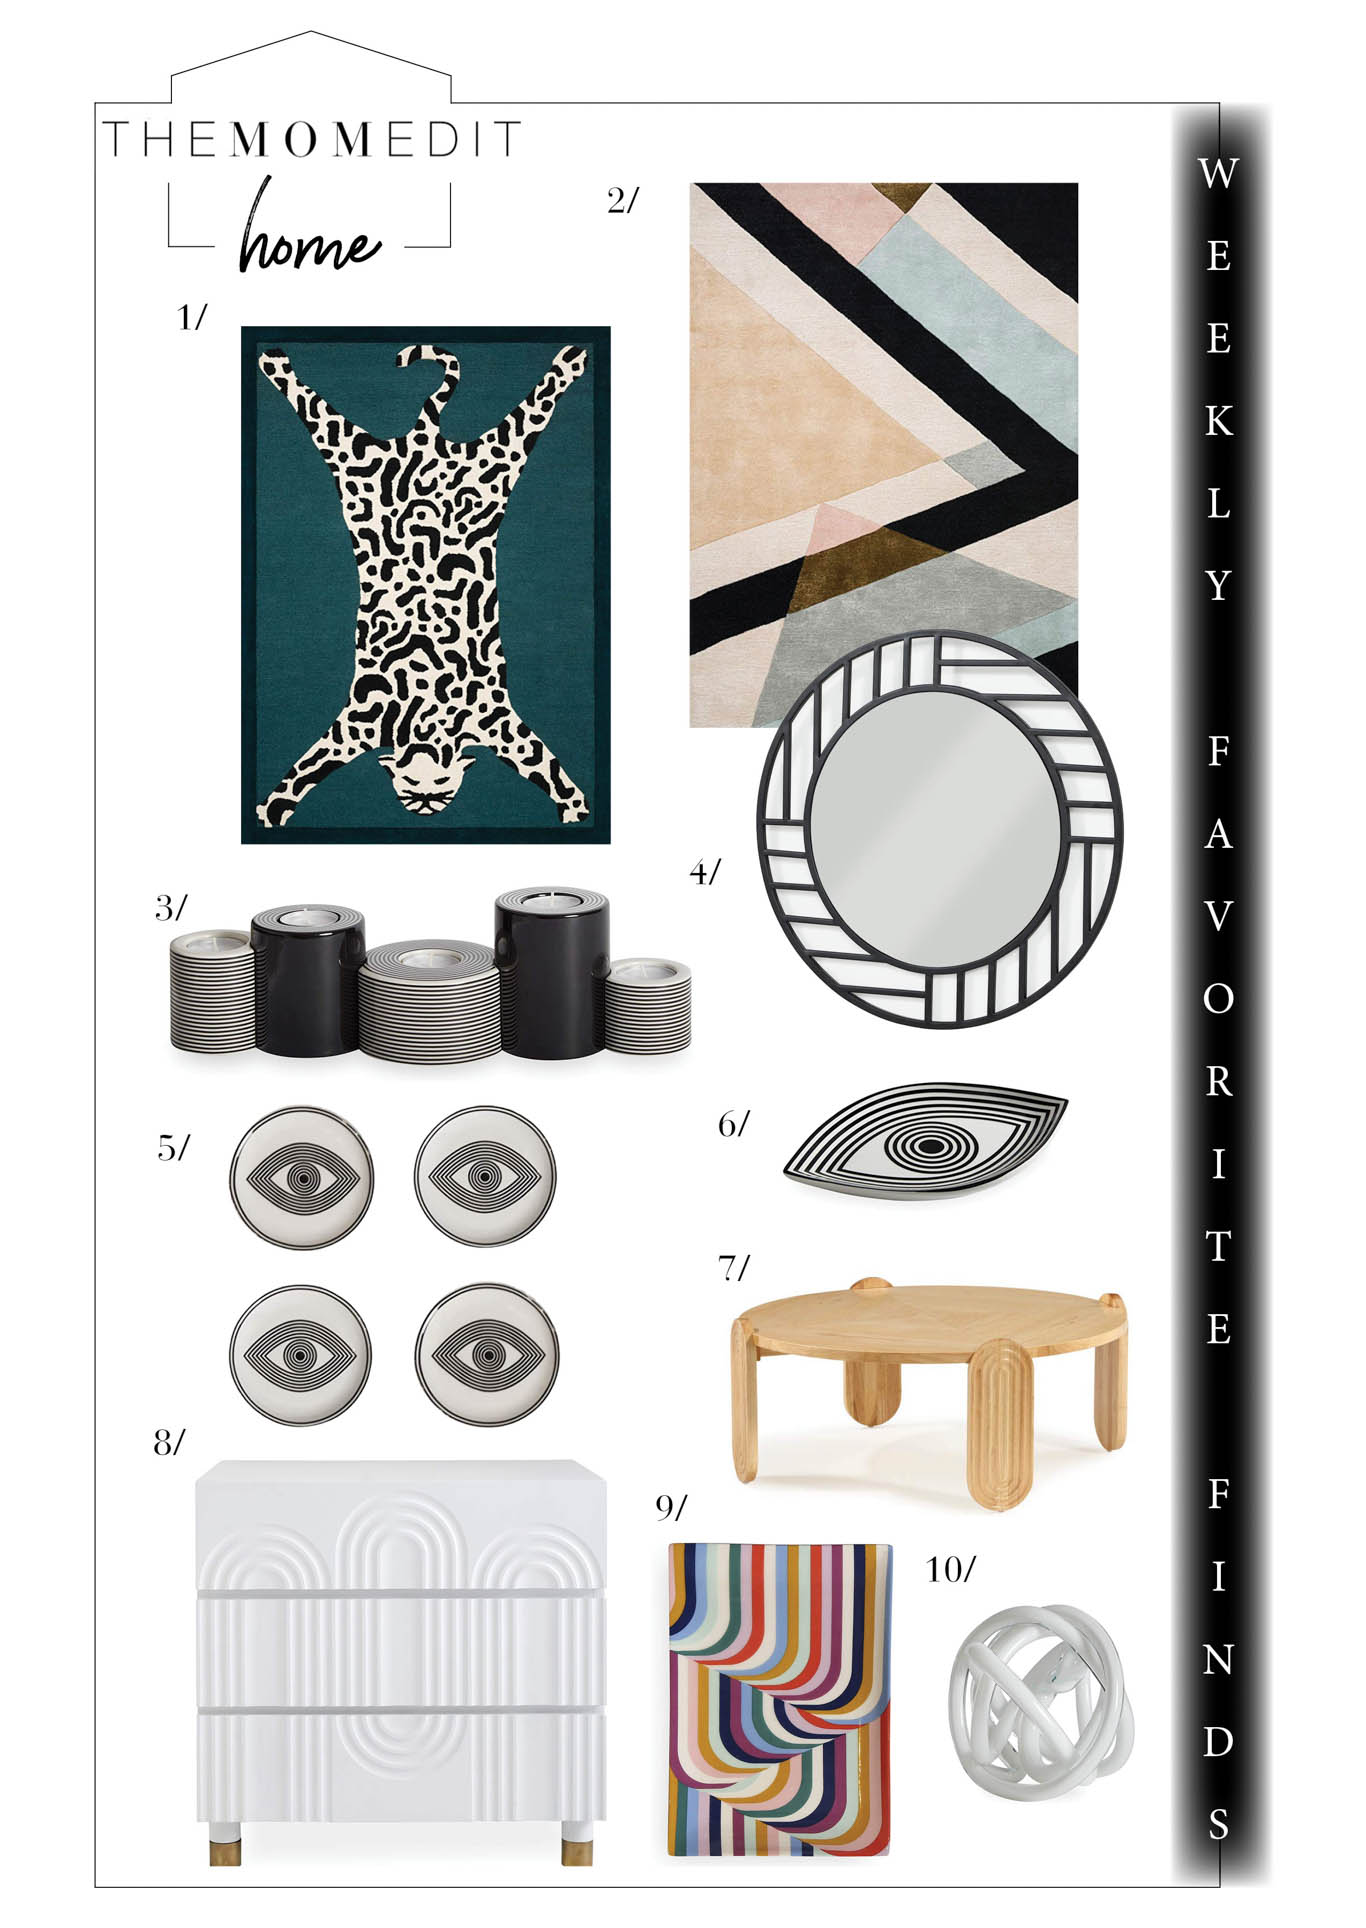 Jonathan Adler is fun— like Leap Year Fun! And NOW he has a great new collection available through Amazon, Now House. That + all the home decor, on sale.